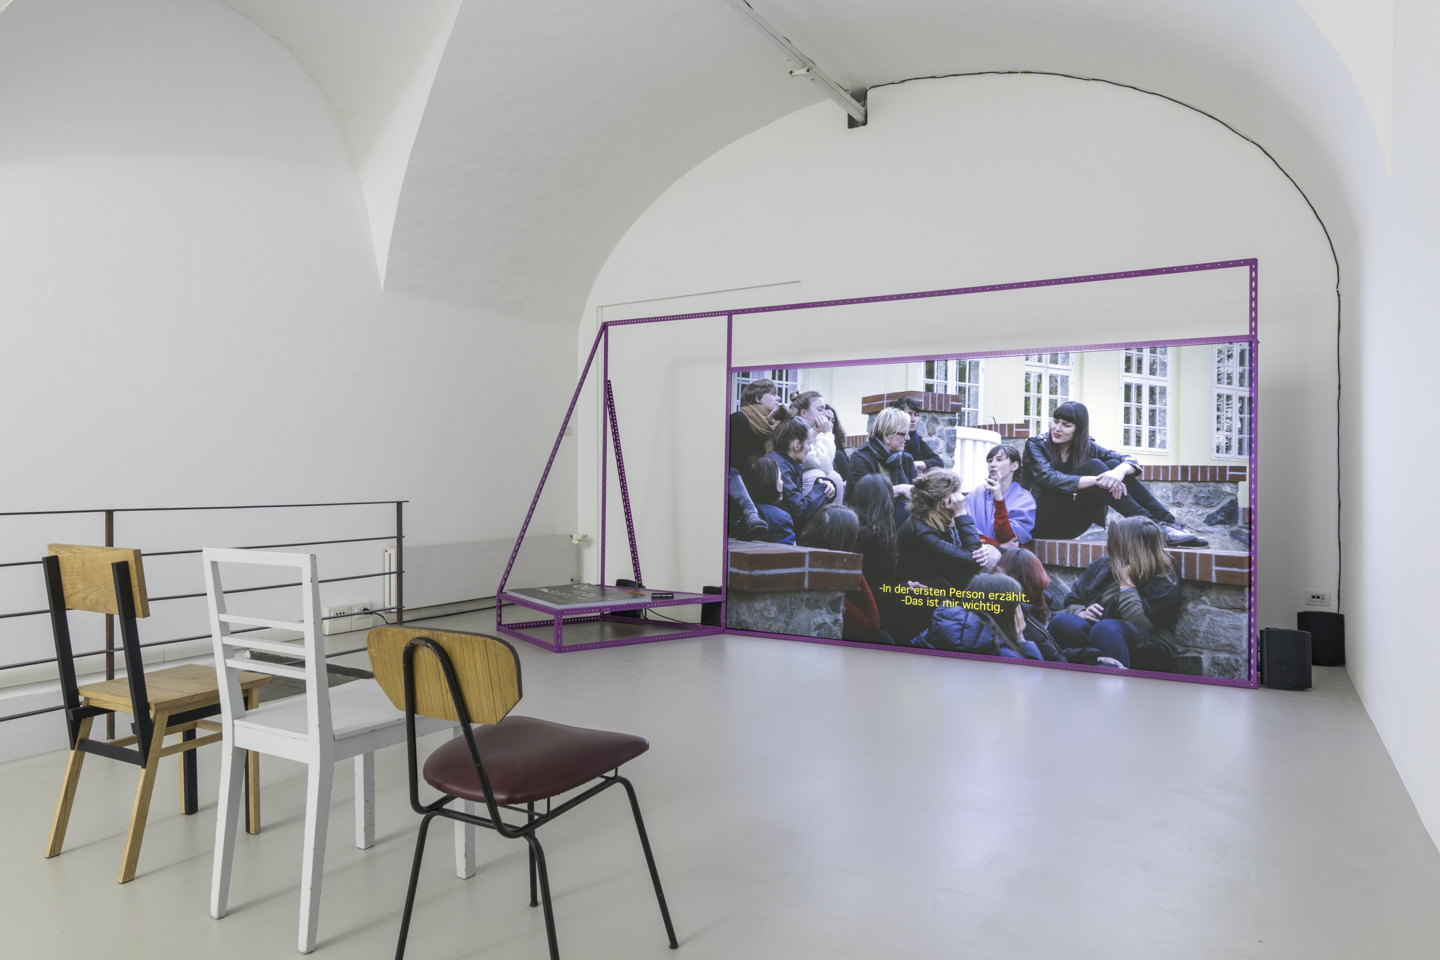 Alex Martinis Roe, To Become Two, installation of the exhibition at ar/ge kunst, ©ar/ge kunst, Bolzano, Foto Tiberio Sorvillo, 2017